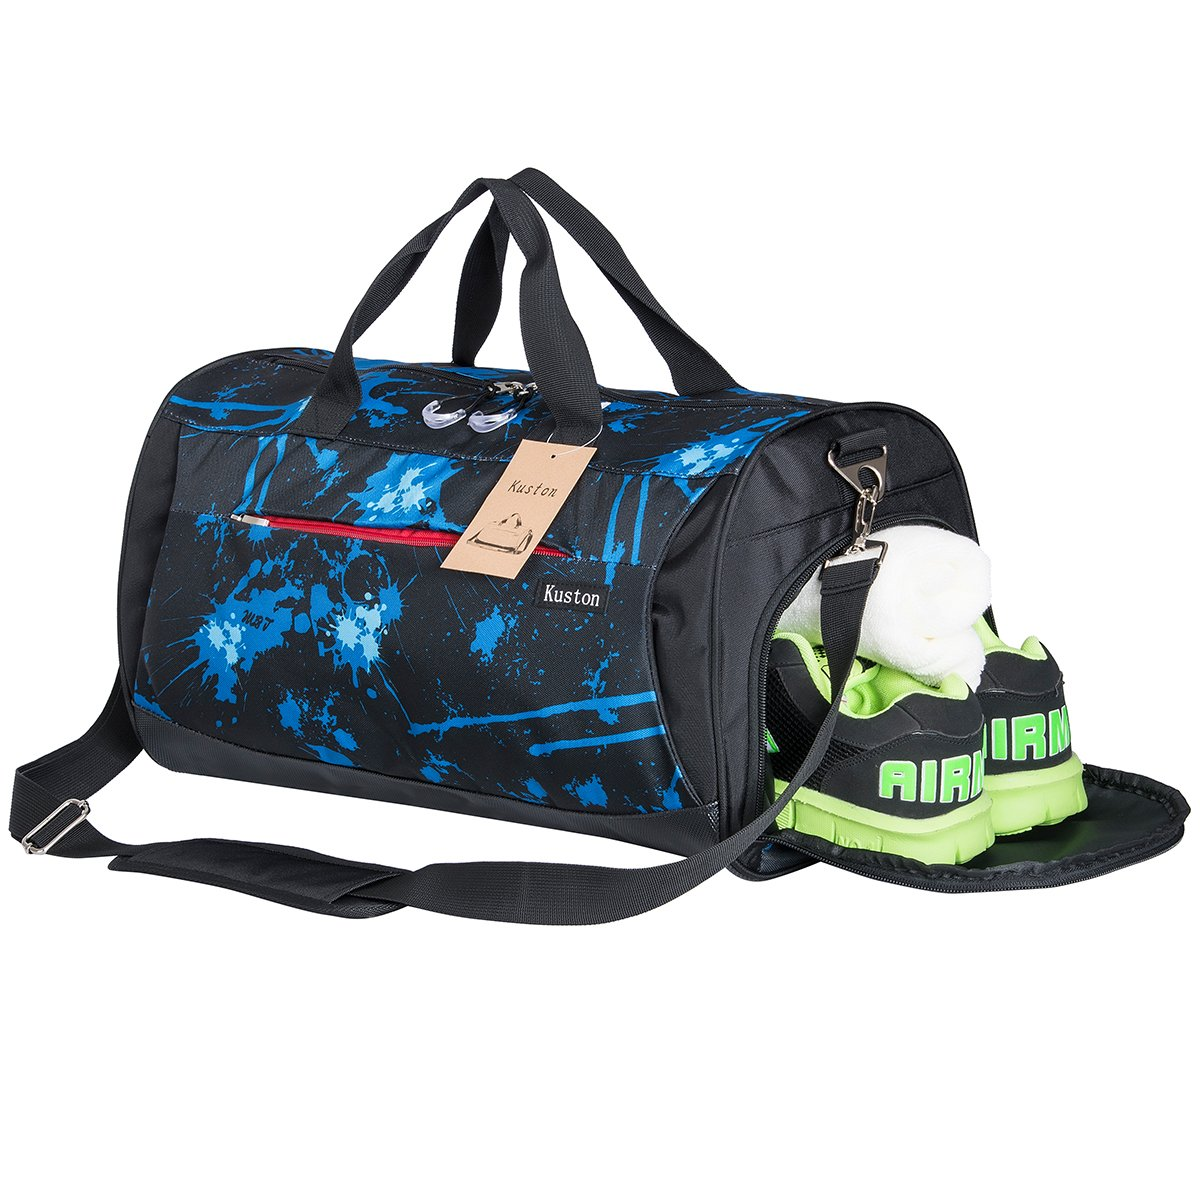 hot sale Kuston Sports Gym Bag with Shoes Compartment Travel Duffel Bag for  Men and Women 1290c0647f